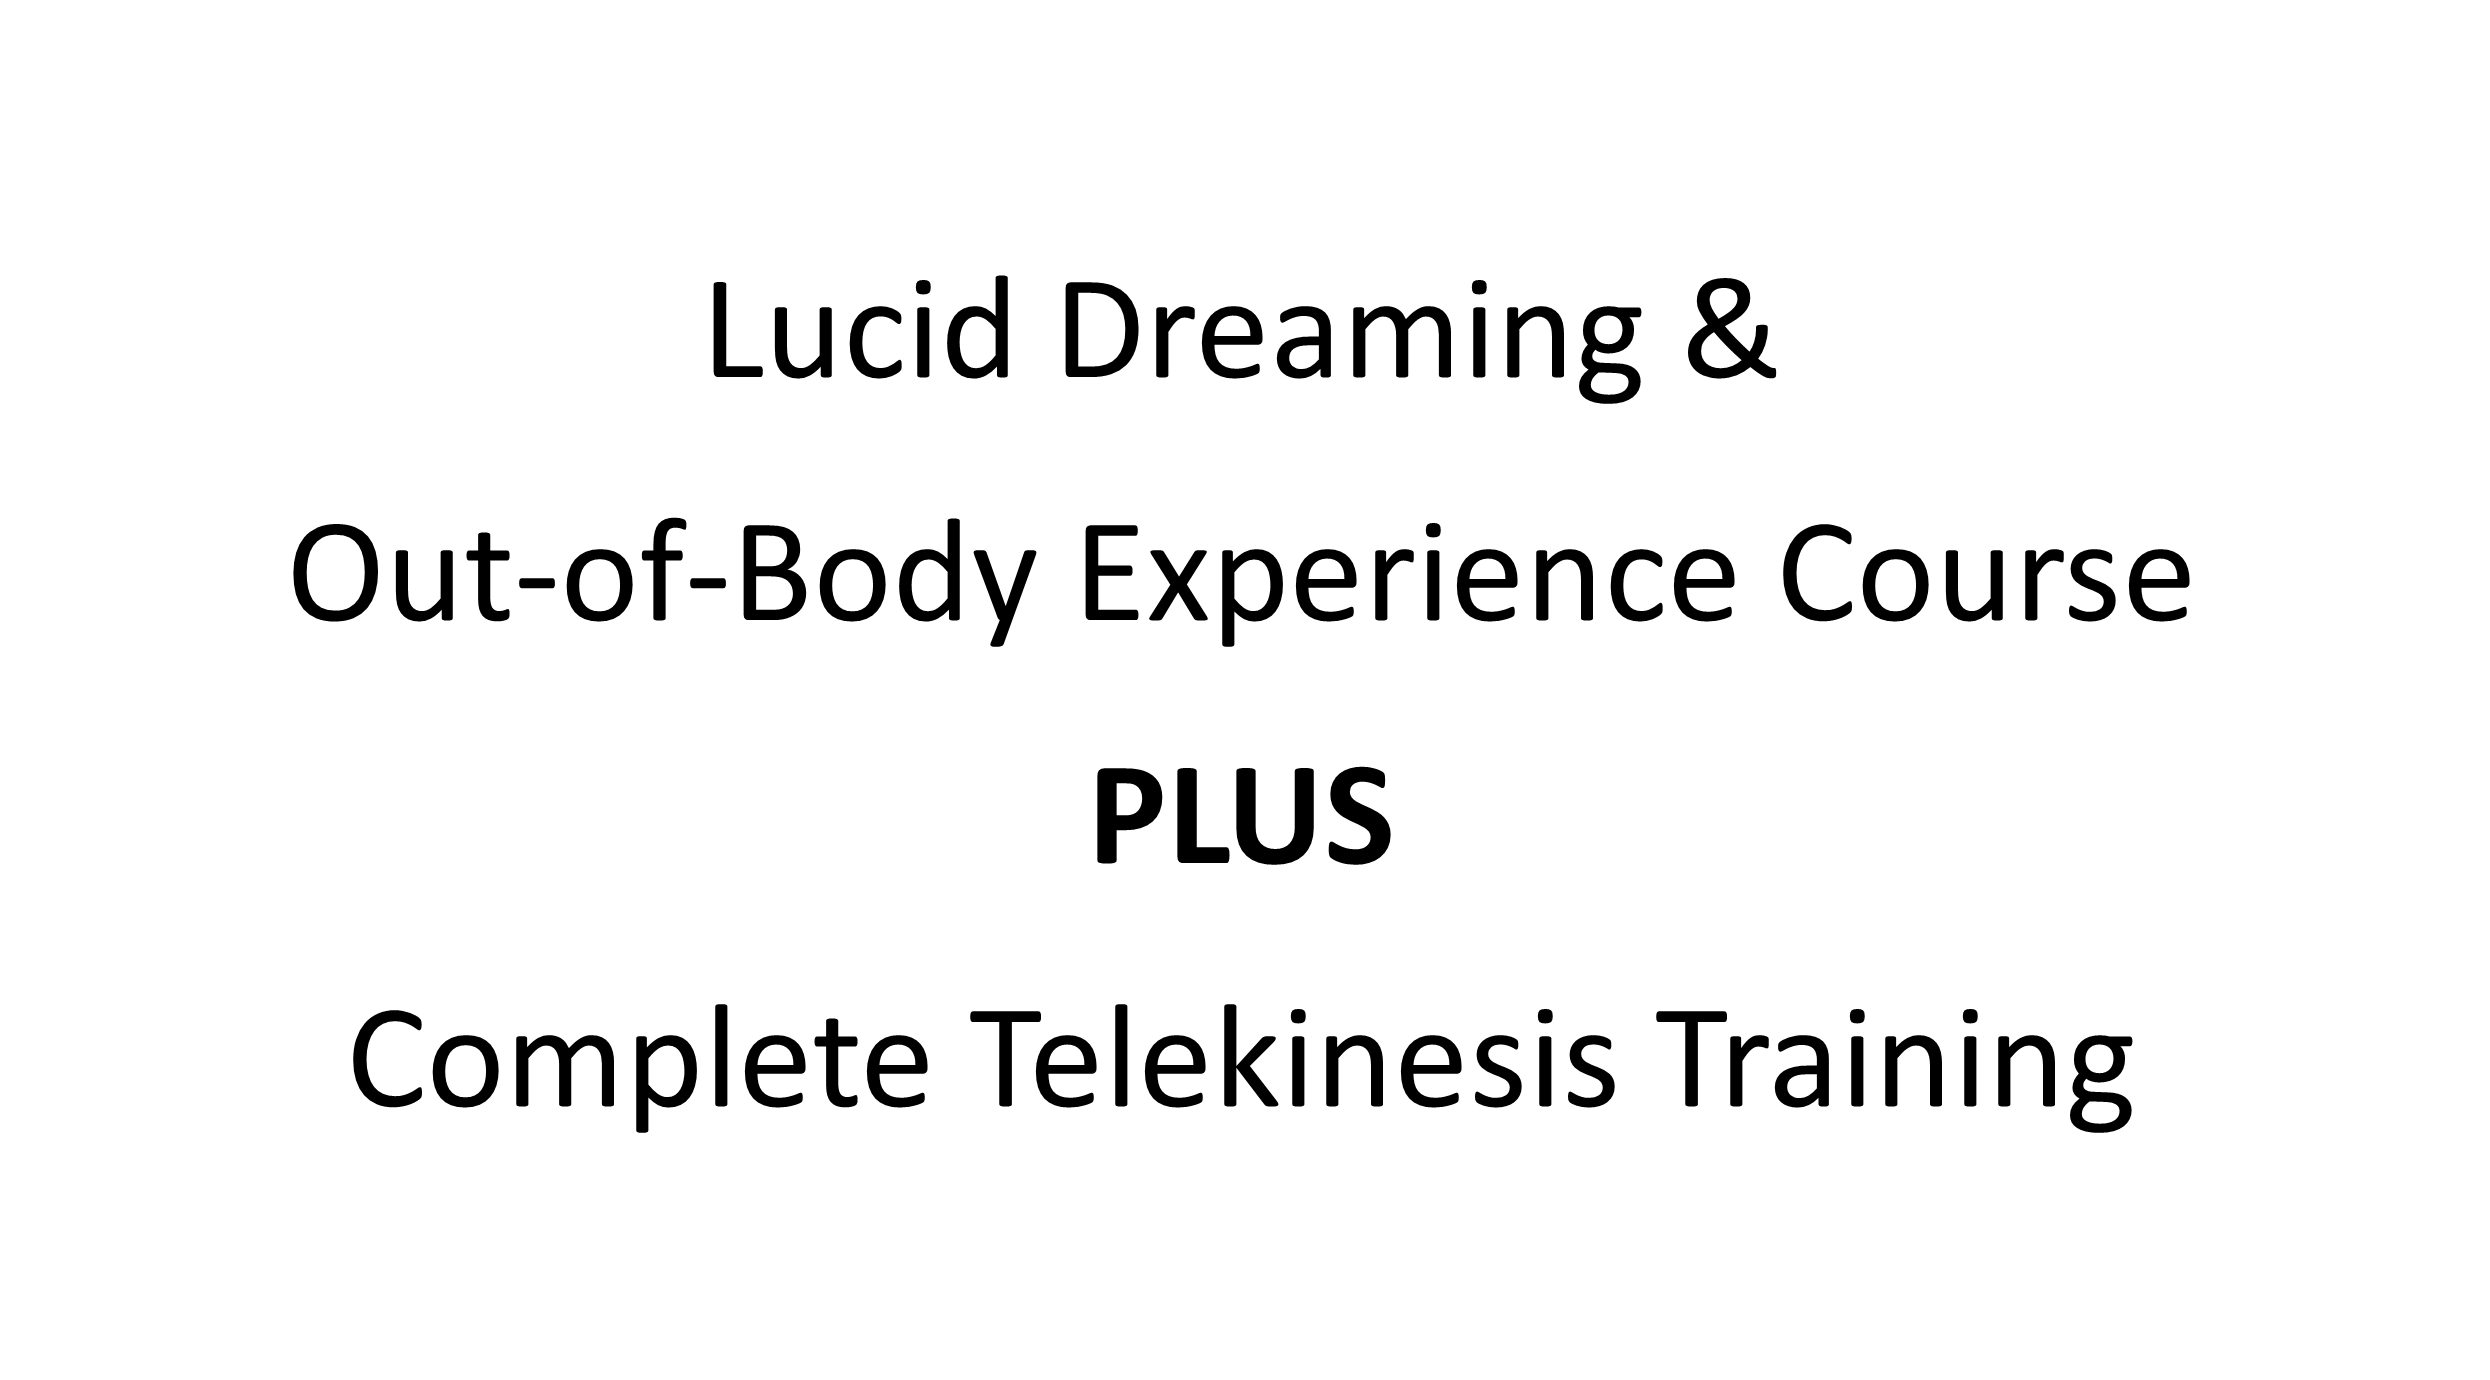 Lucid Dreaming & Out-of-Body Experience Training PLUS the Complete Telekinesis Training Program